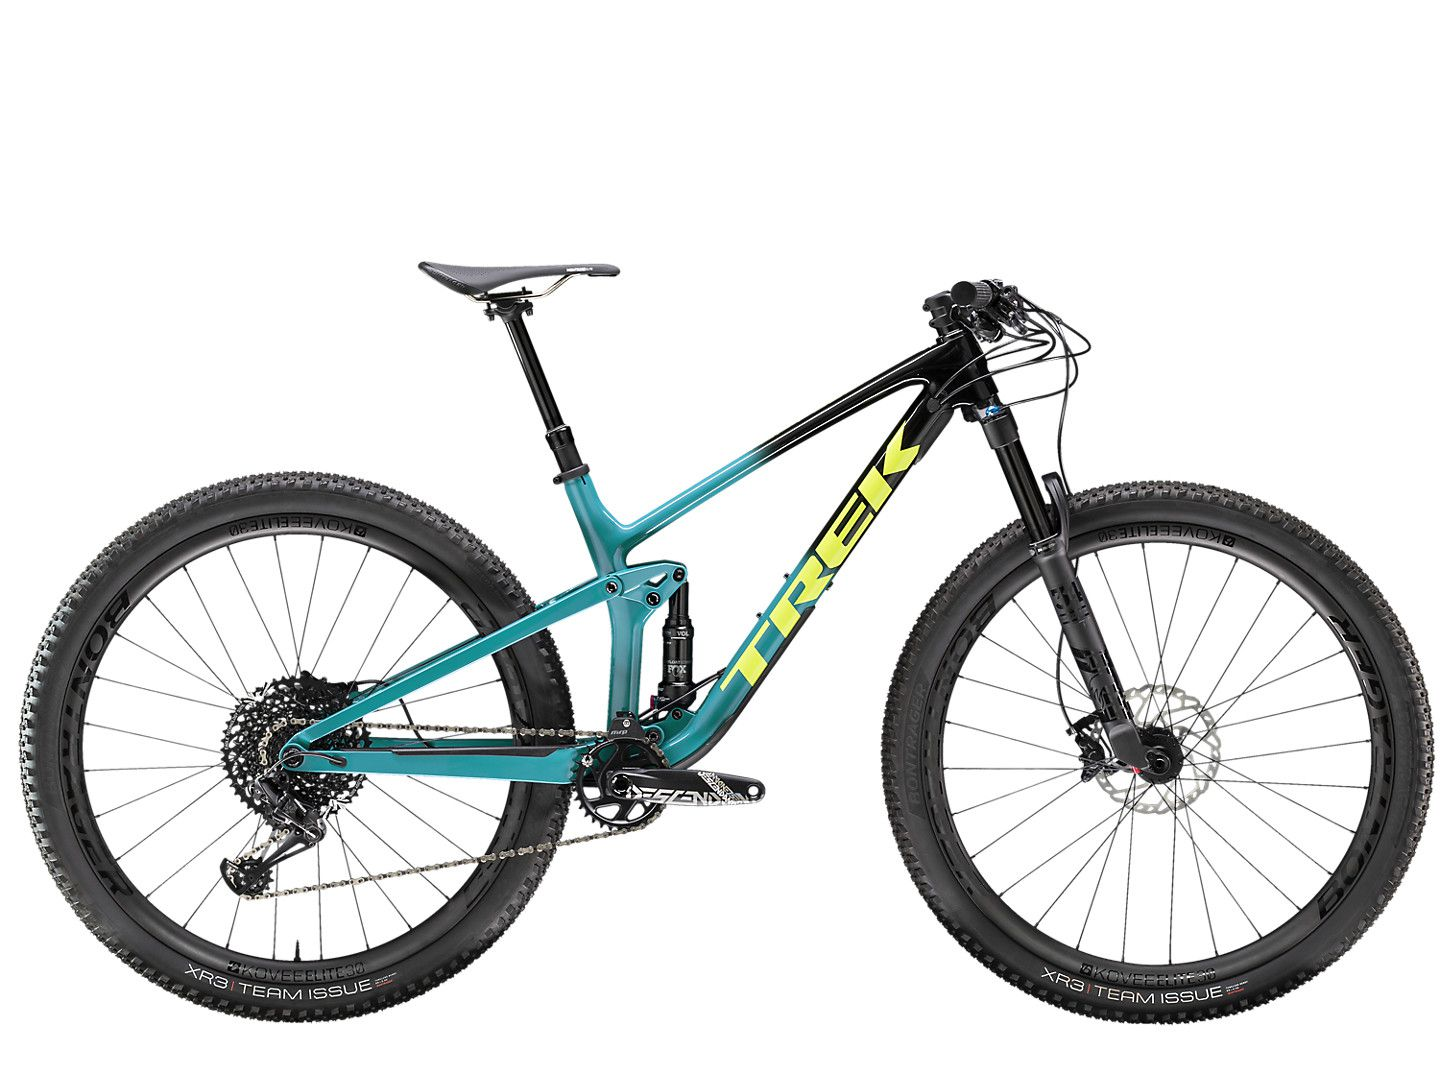 Bicicleta 29 Trek Full Suspension Top Fuel 9.8 2020